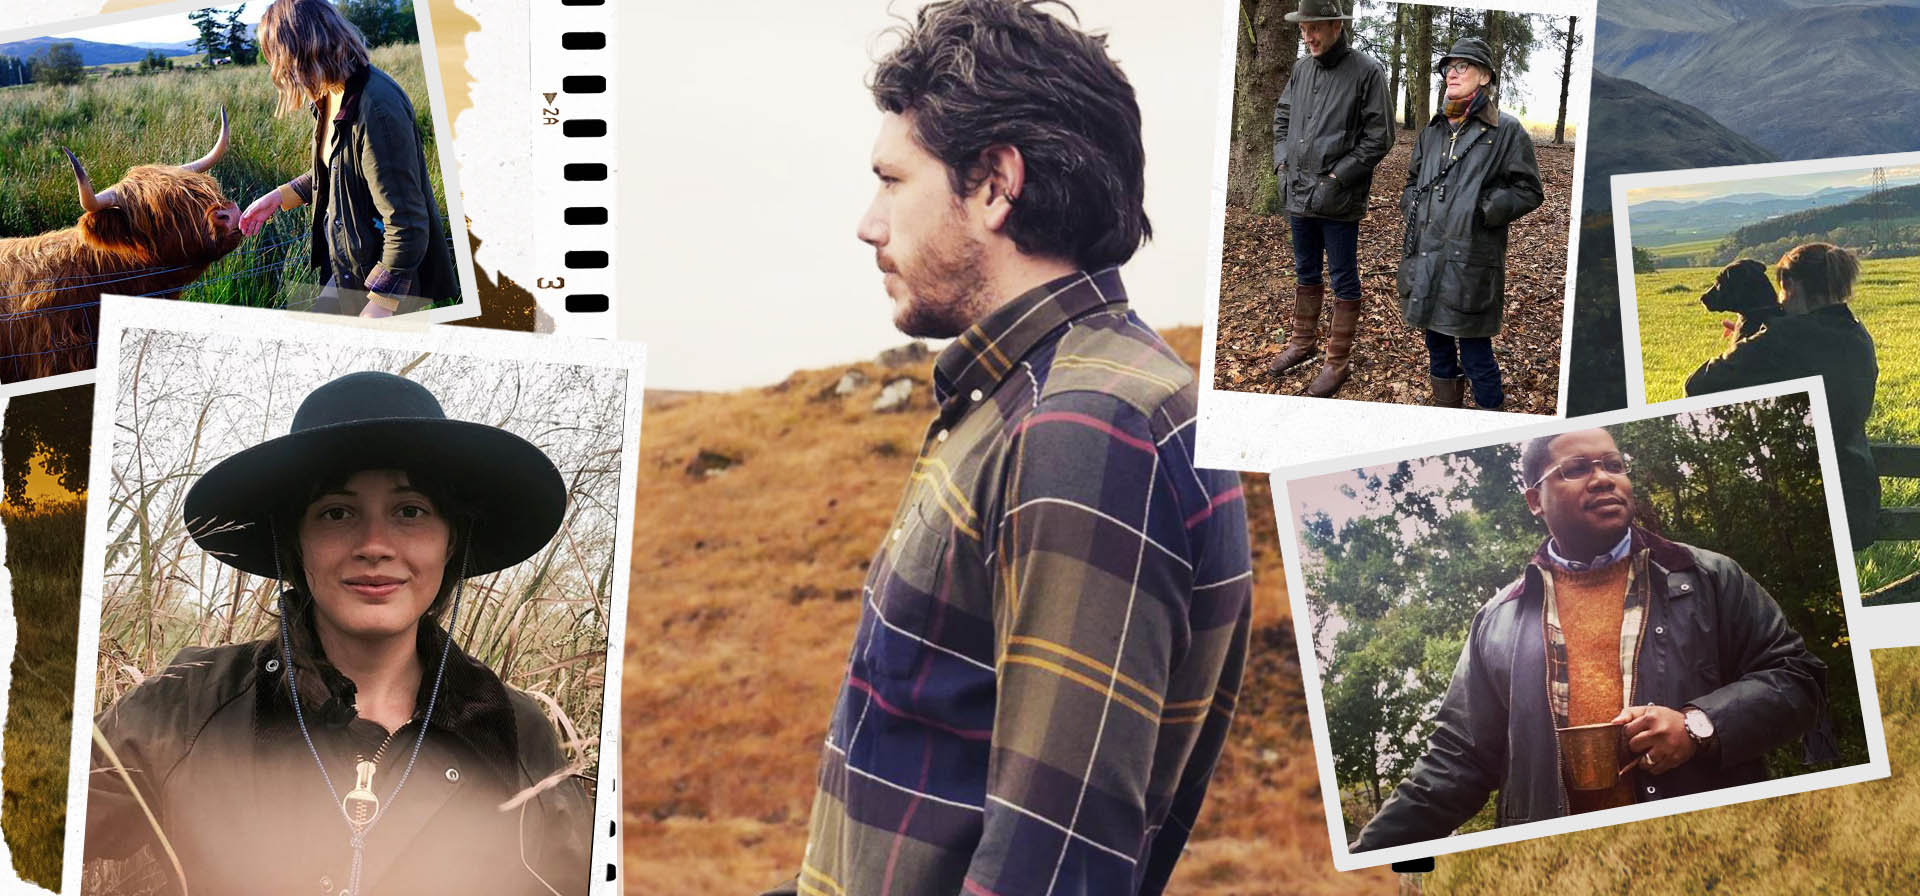 (Barbour) barbour way of life